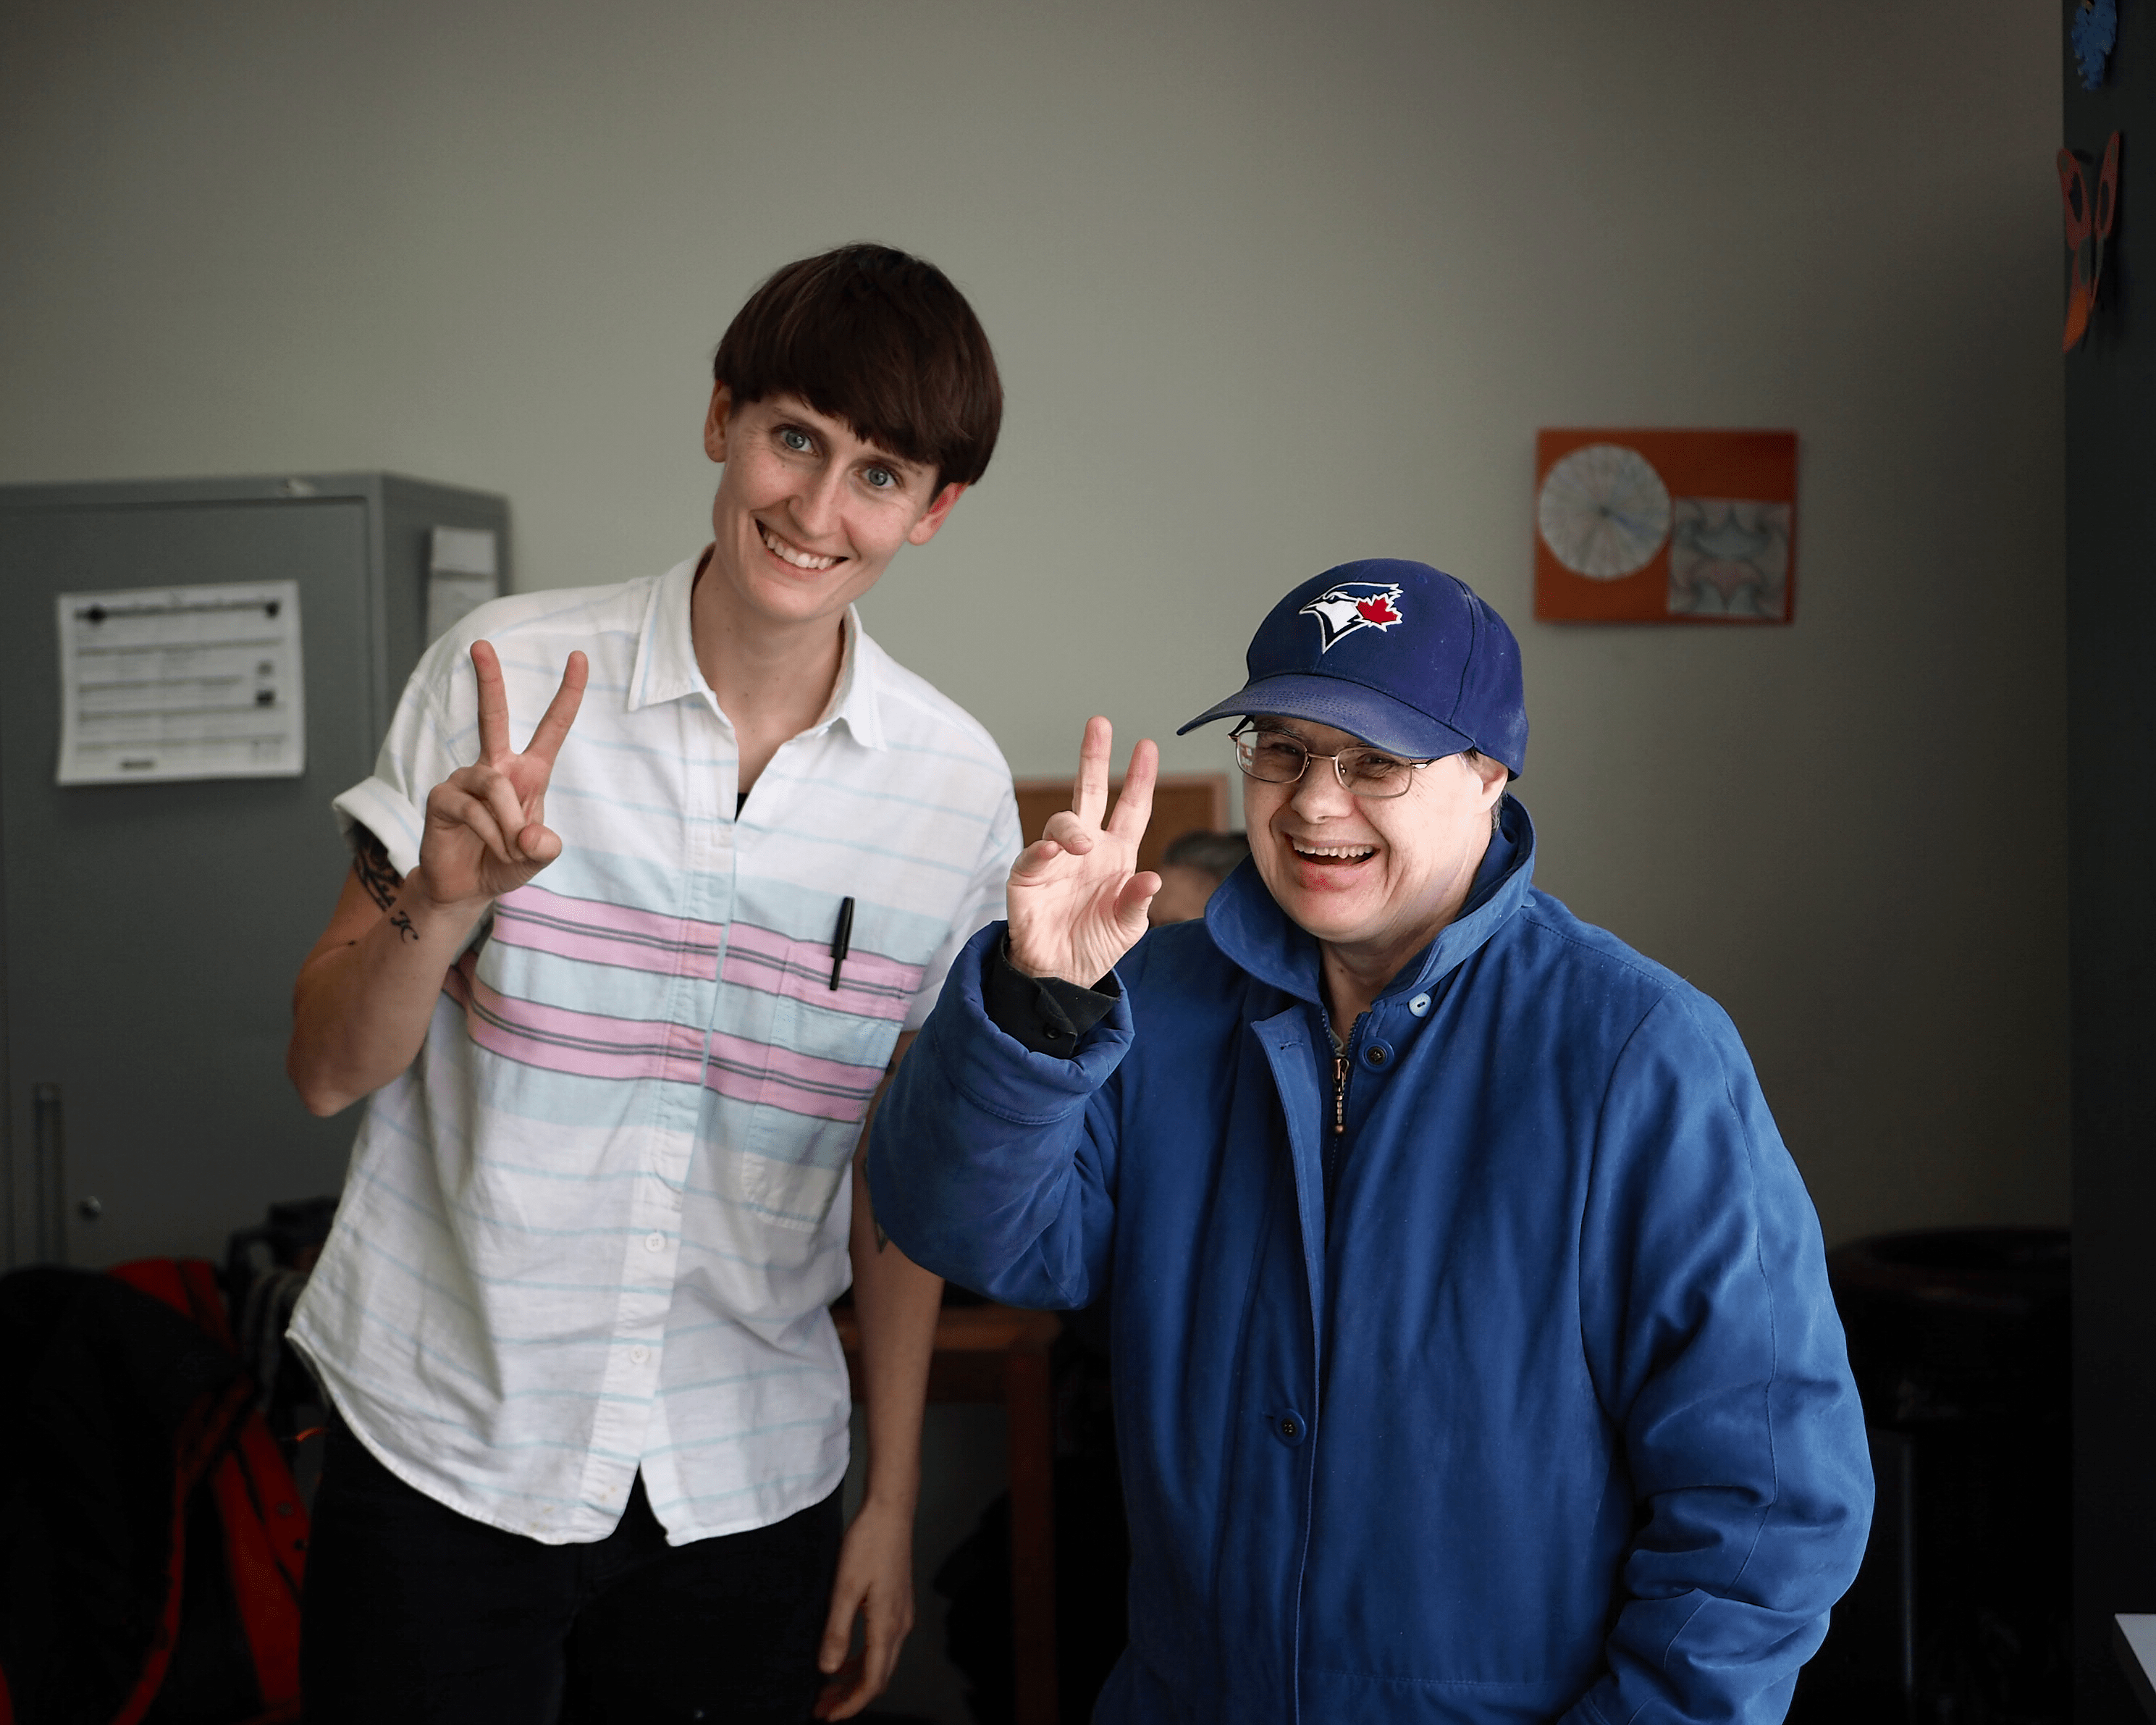 Two people are standing beside each other smiling and making peace signs.